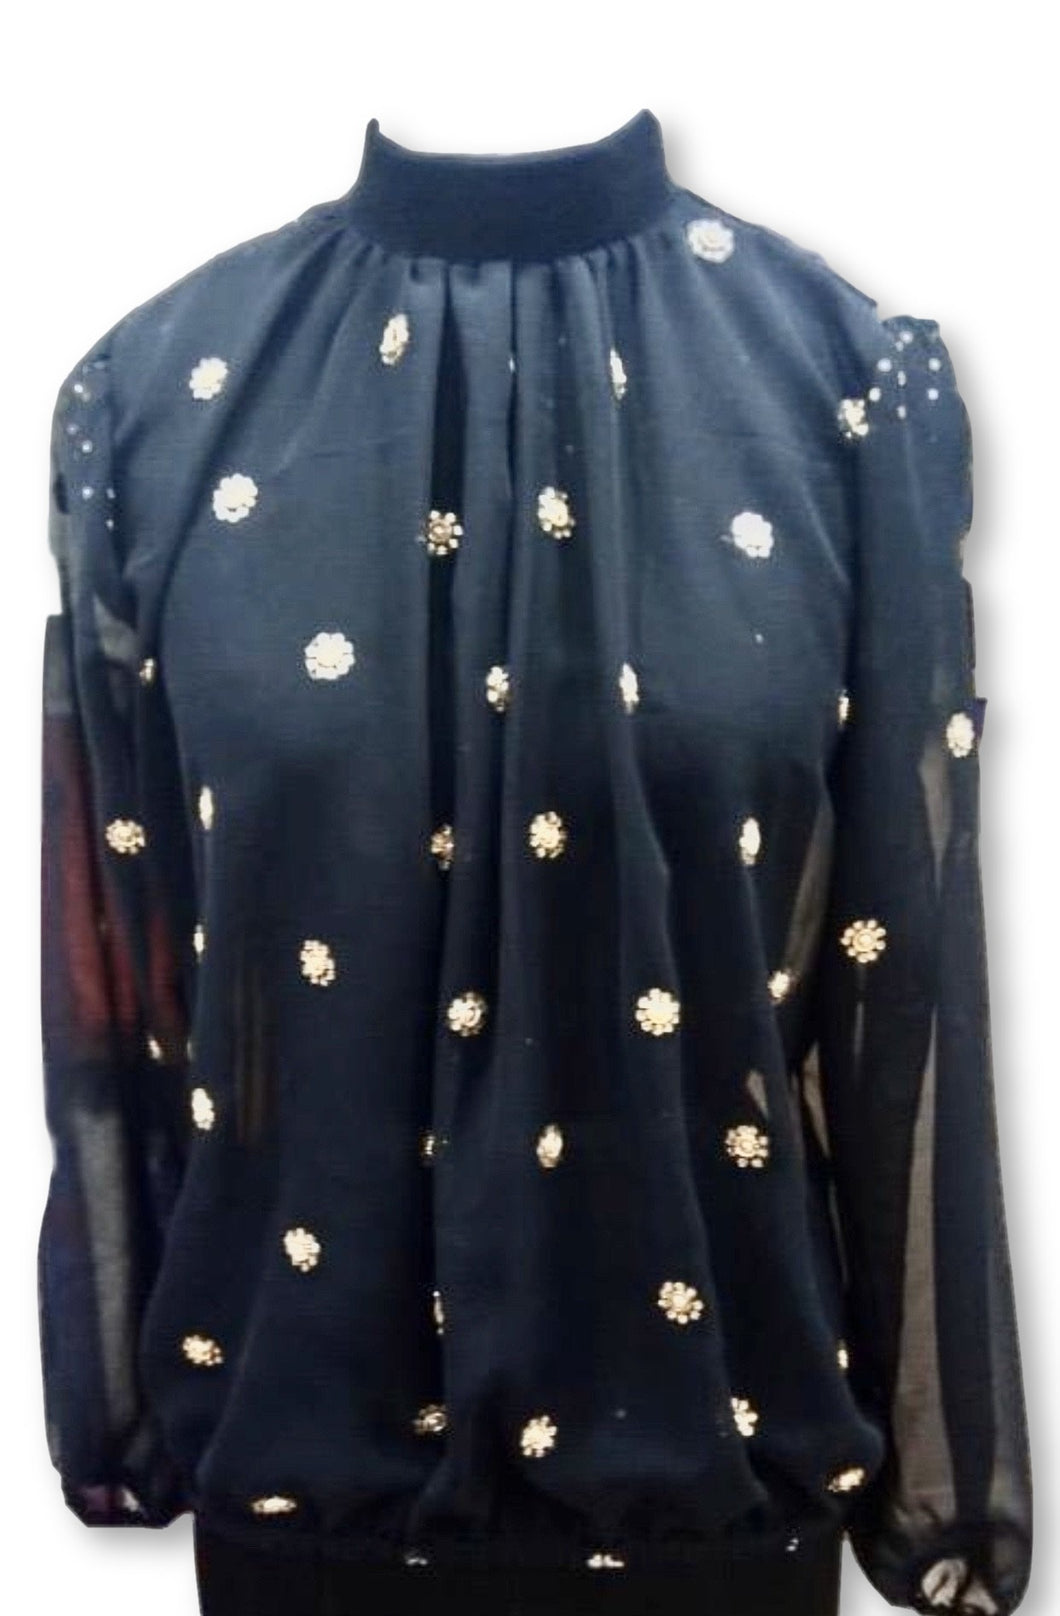 ENTICE BLOUSE - Black With Gold Beading